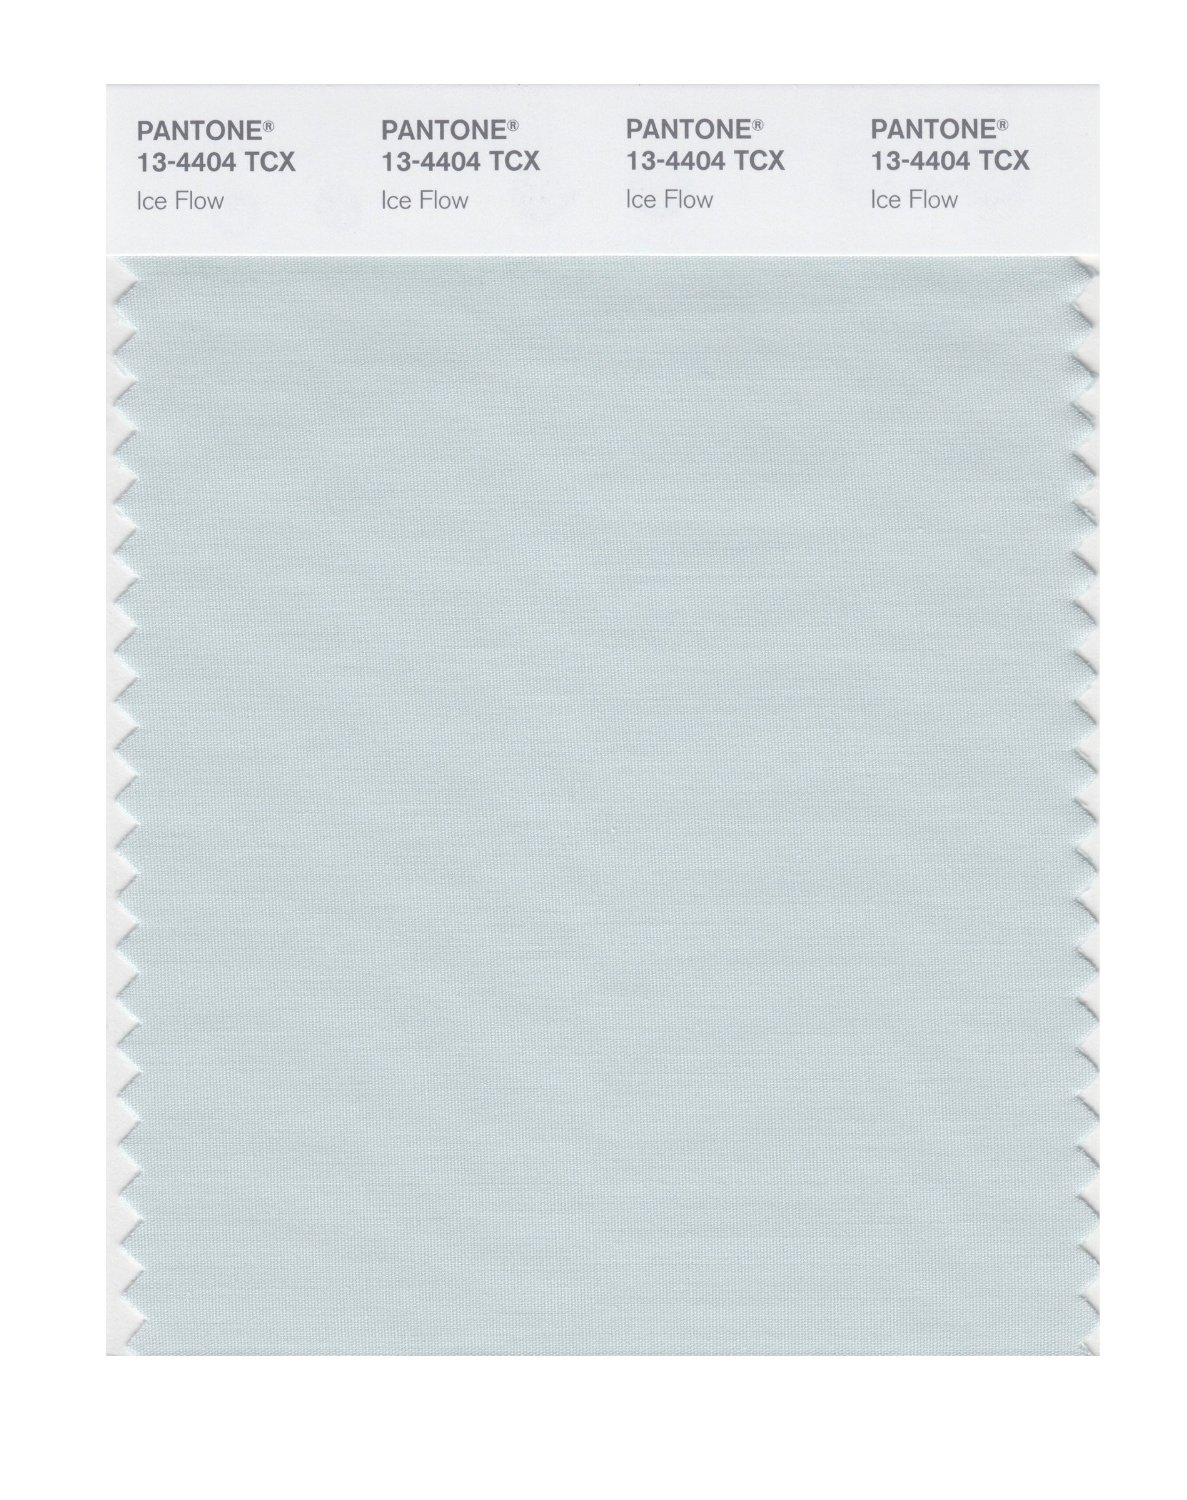 Pantone Smart Swatch 13-4404 Ice Flow